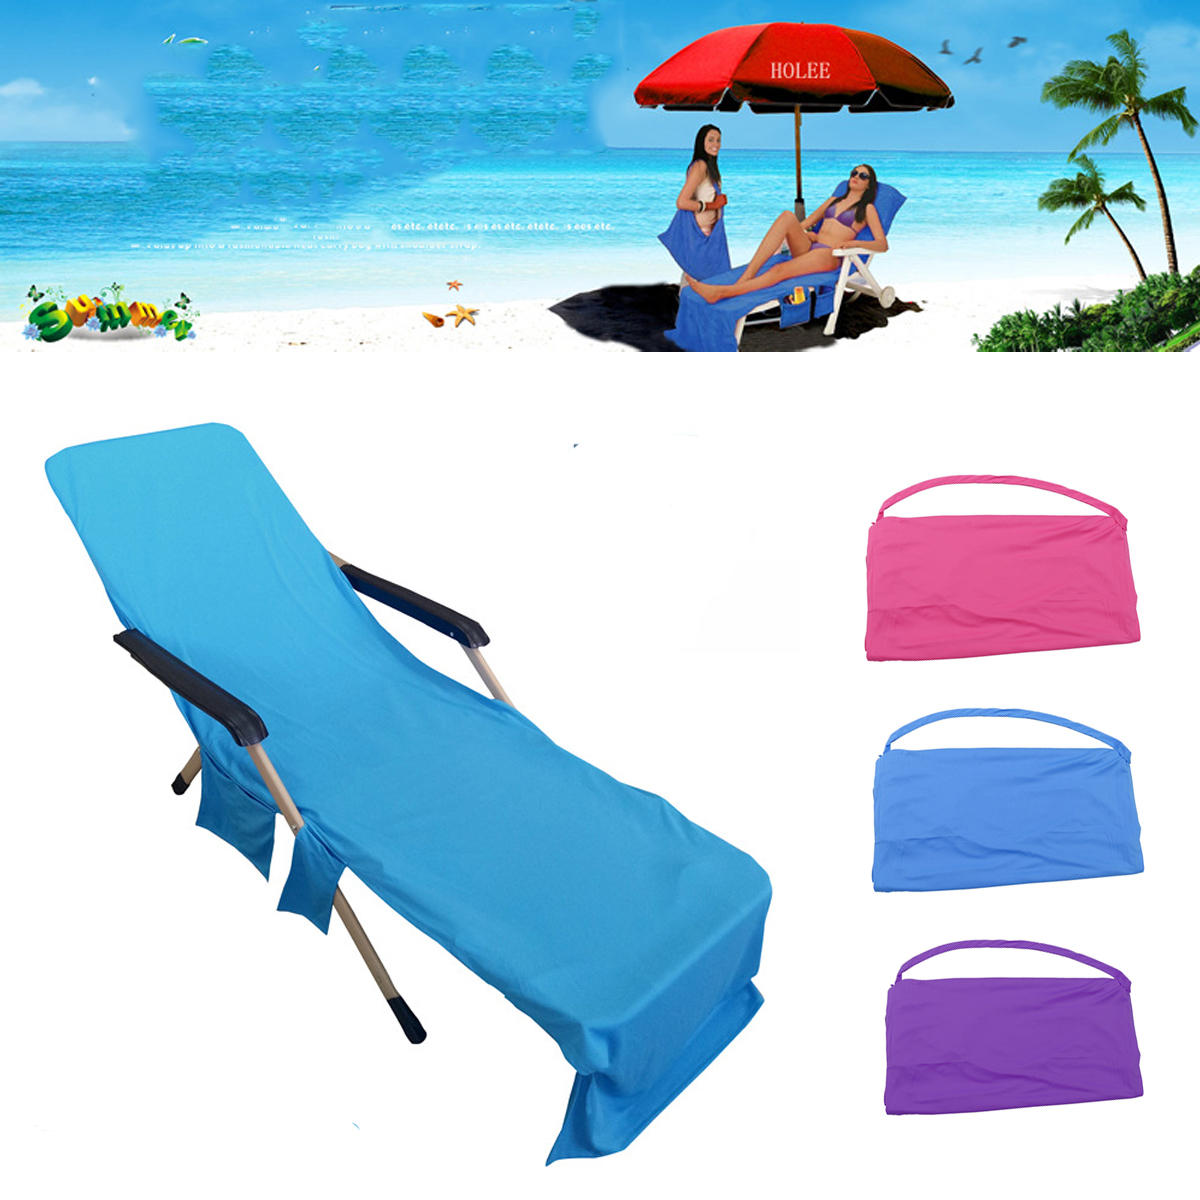 Portable Beach Chair Outdoor Portable Magic Ice Towel Sunbath Lounger Bed Cooling Beach Chair Cover